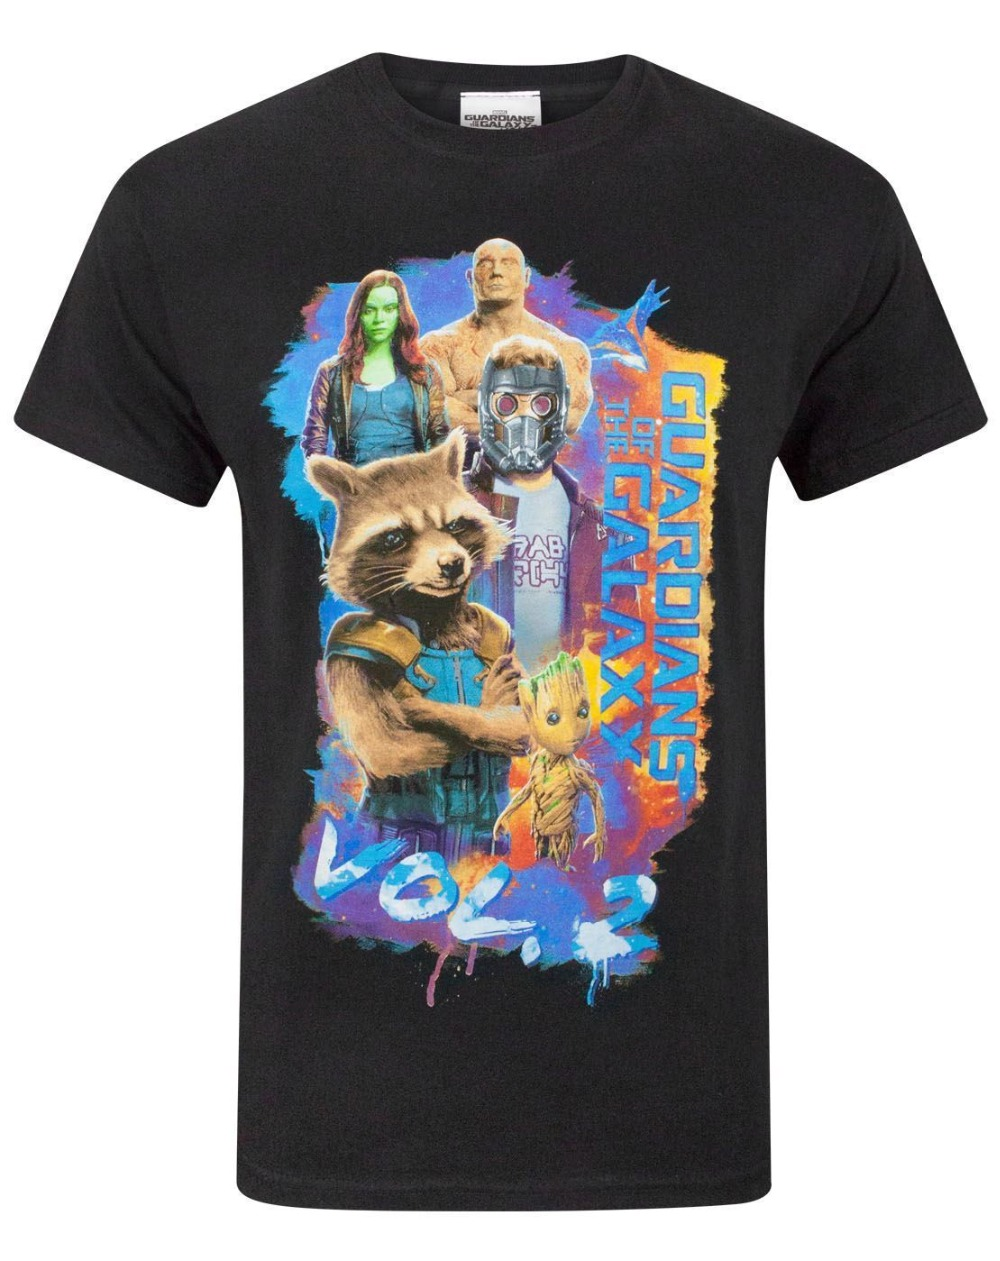 2018 Streetwear Short Sleeve Tees Guardians Of The Galaxy Vol 2 Group Pose Mens T-Shirt Print Summer Tops Tees